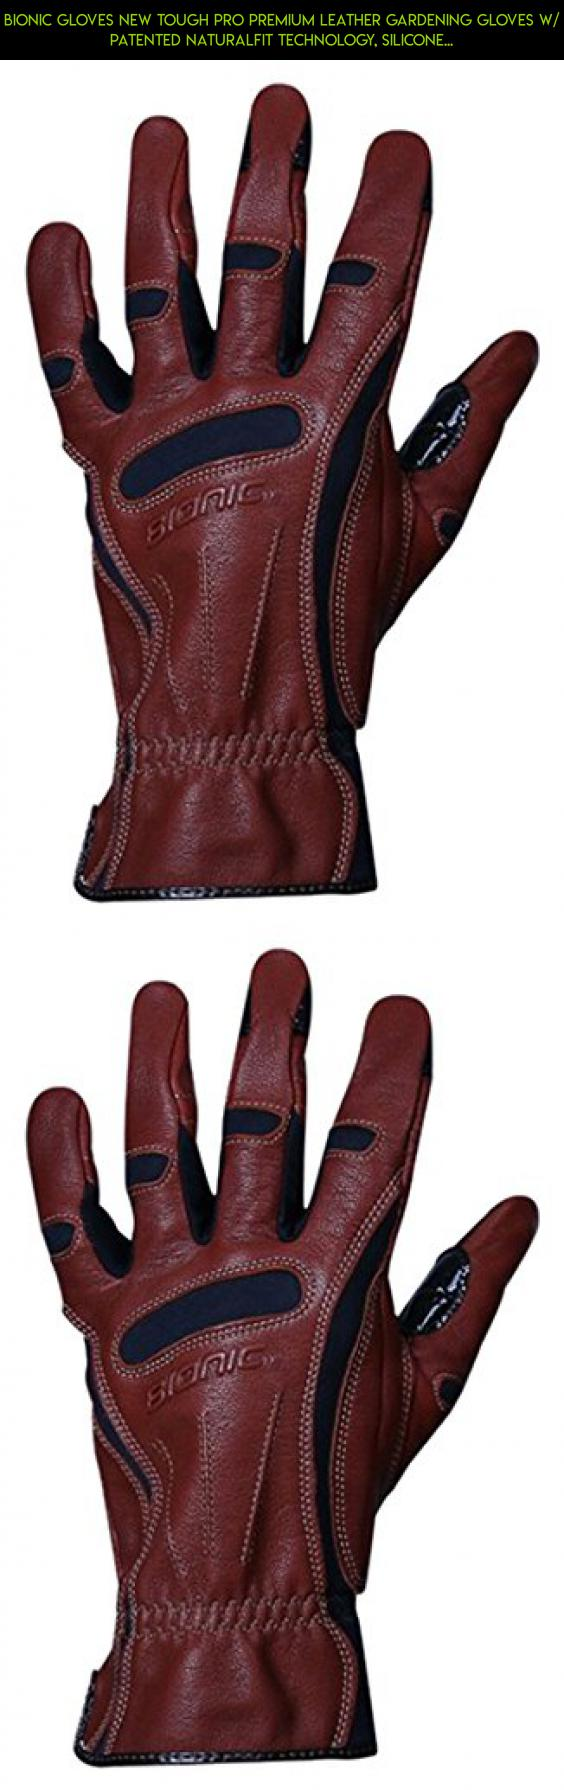 Bionic leather work gloves - Bionic Gloves New Tough Pro Premium Leather Gardening Gloves W Patented Naturalfit Technology Silicone